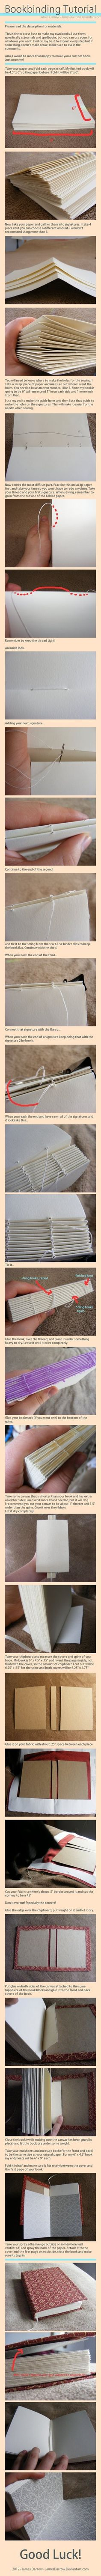 DIY- Bookbinding tutorial~ How to bind your own art journal, book, photo album, cookbook, etc. notebook diy handmade journals Bookbinding Tutorial by JamesDarrow on DeviantArt Diy Projects To Try, Craft Projects, Craft Ideas, School Projects, 31 Ideas, Creative Ideas, Food Ideas, Fun Crafts, Paper Crafts